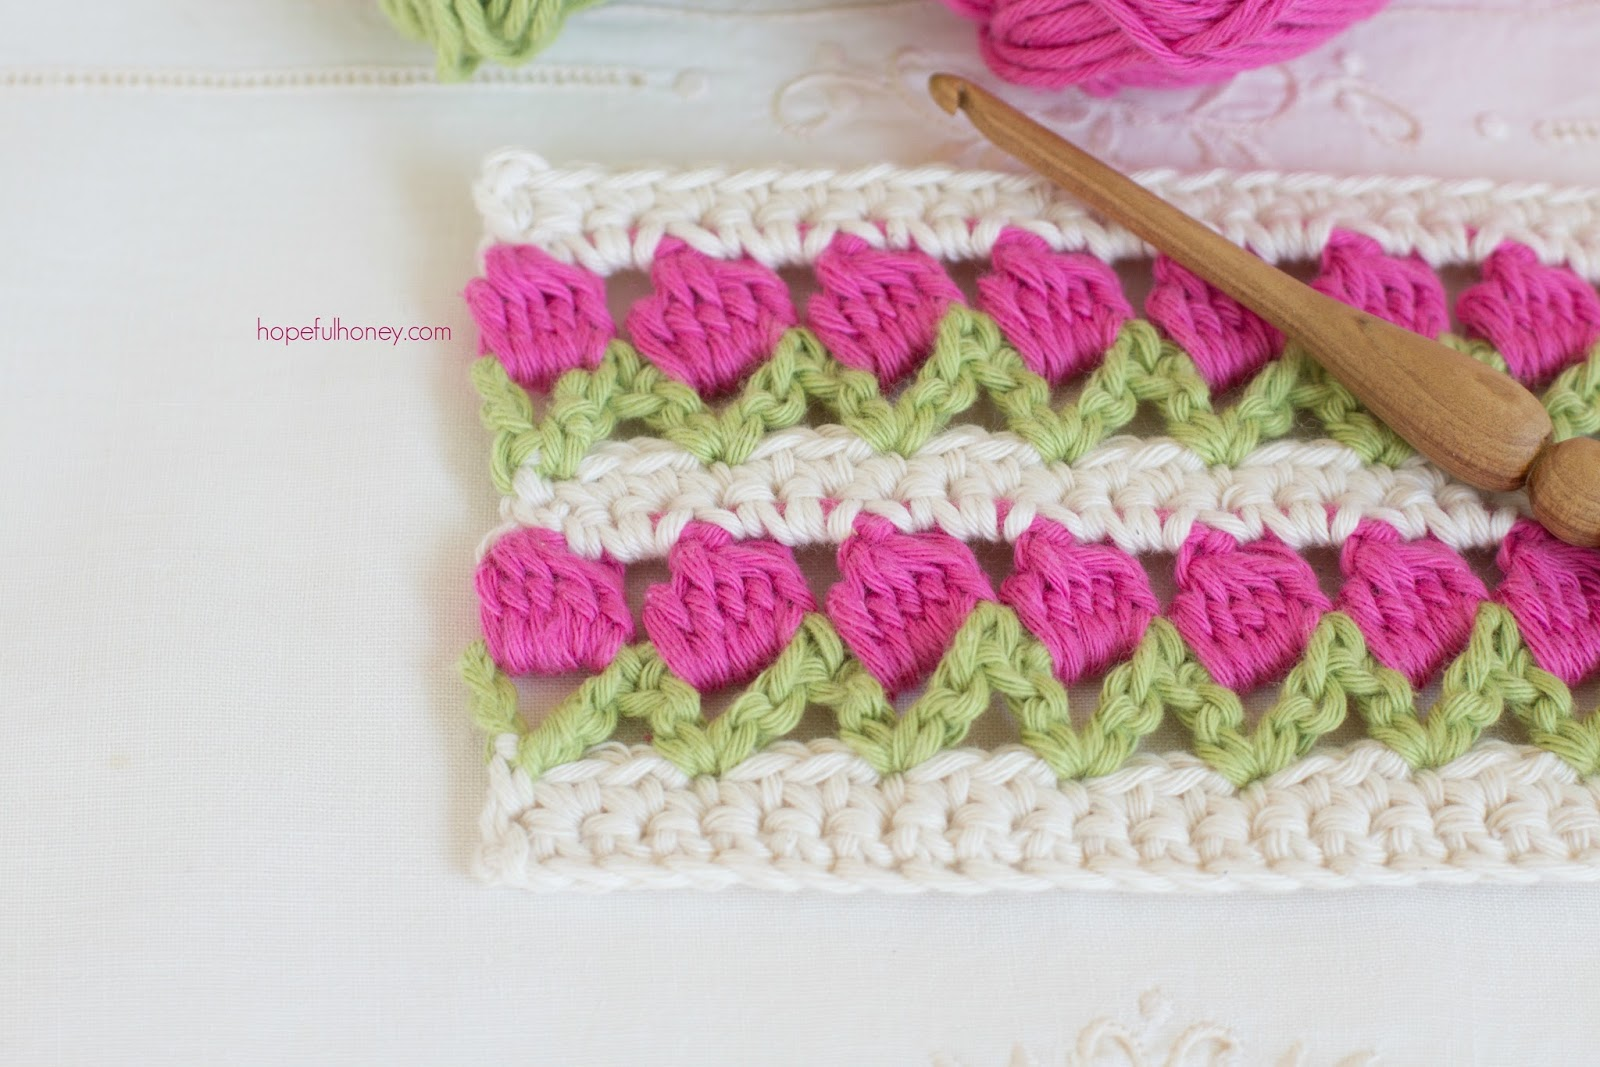 How To Crochet Tutorial Pictures : Hopeful Honey Craft, Crochet, Create: How To: Crochet ...